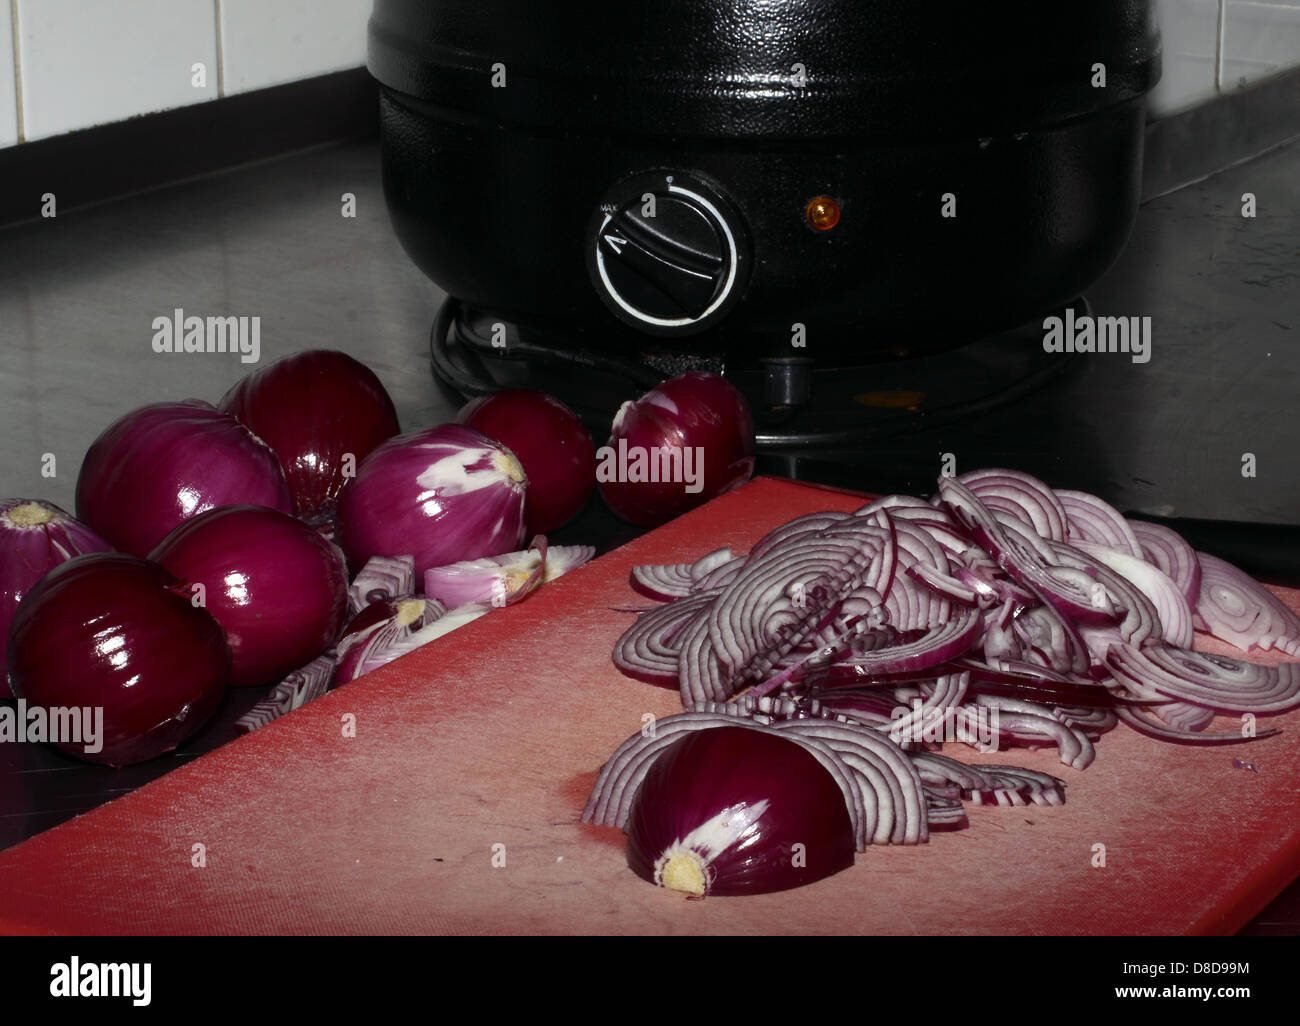 Whole red onions lying on a steel table next to a soup cooker. In front a red plastic cutboard with sliced red onions - Stock Image